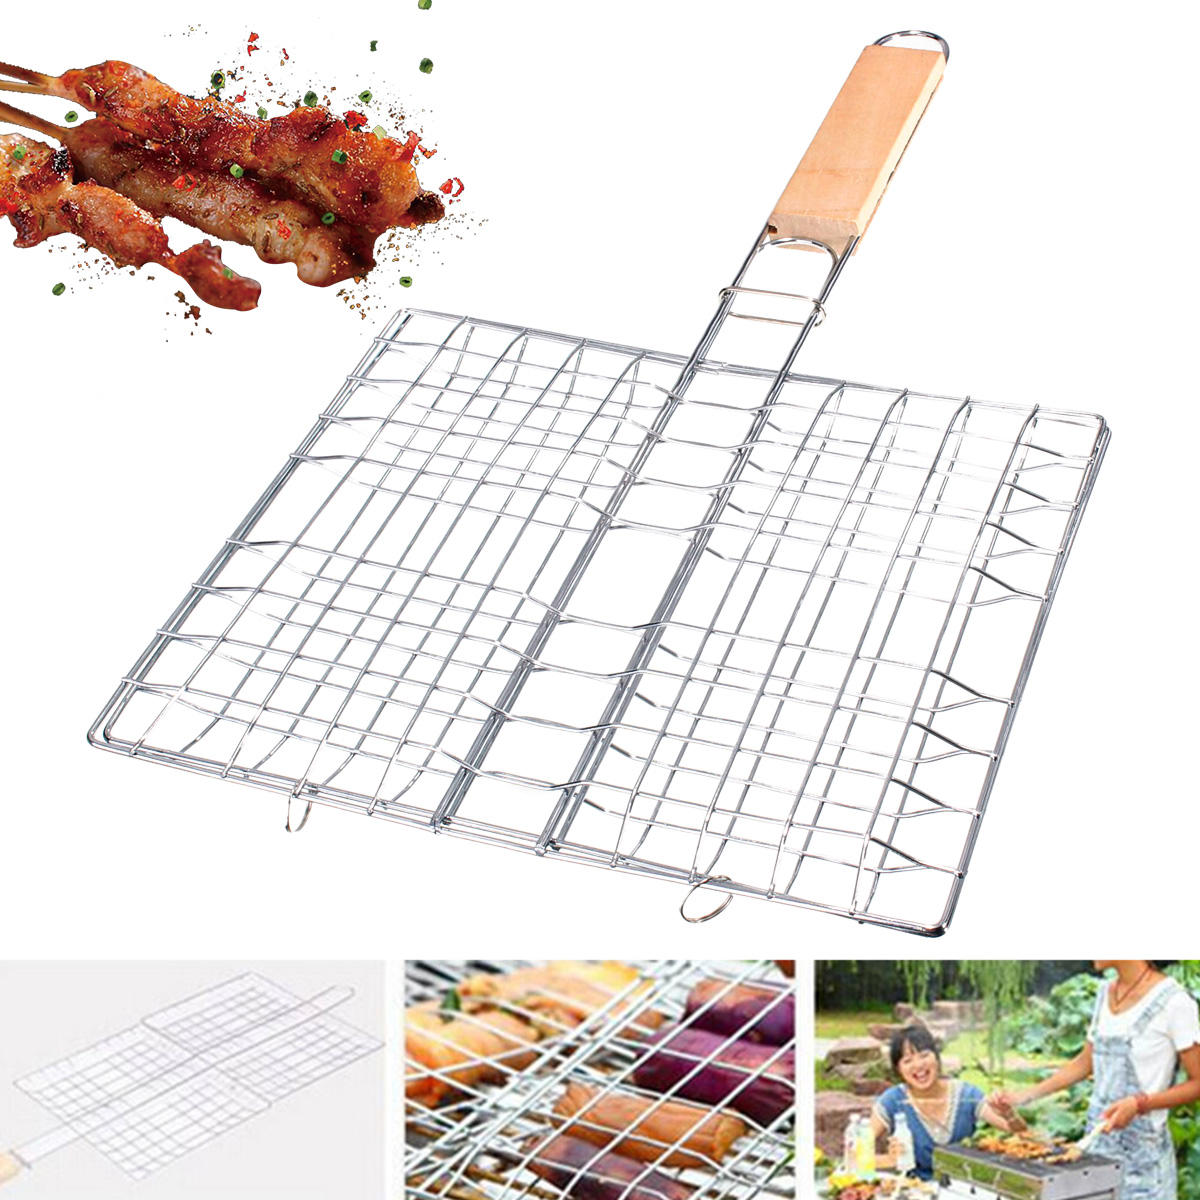 Portable Folding Stainless Steel BBQ Grill Basket Outdoor Camping BBQ Hamburg Vegetables Fishs Cooking Net